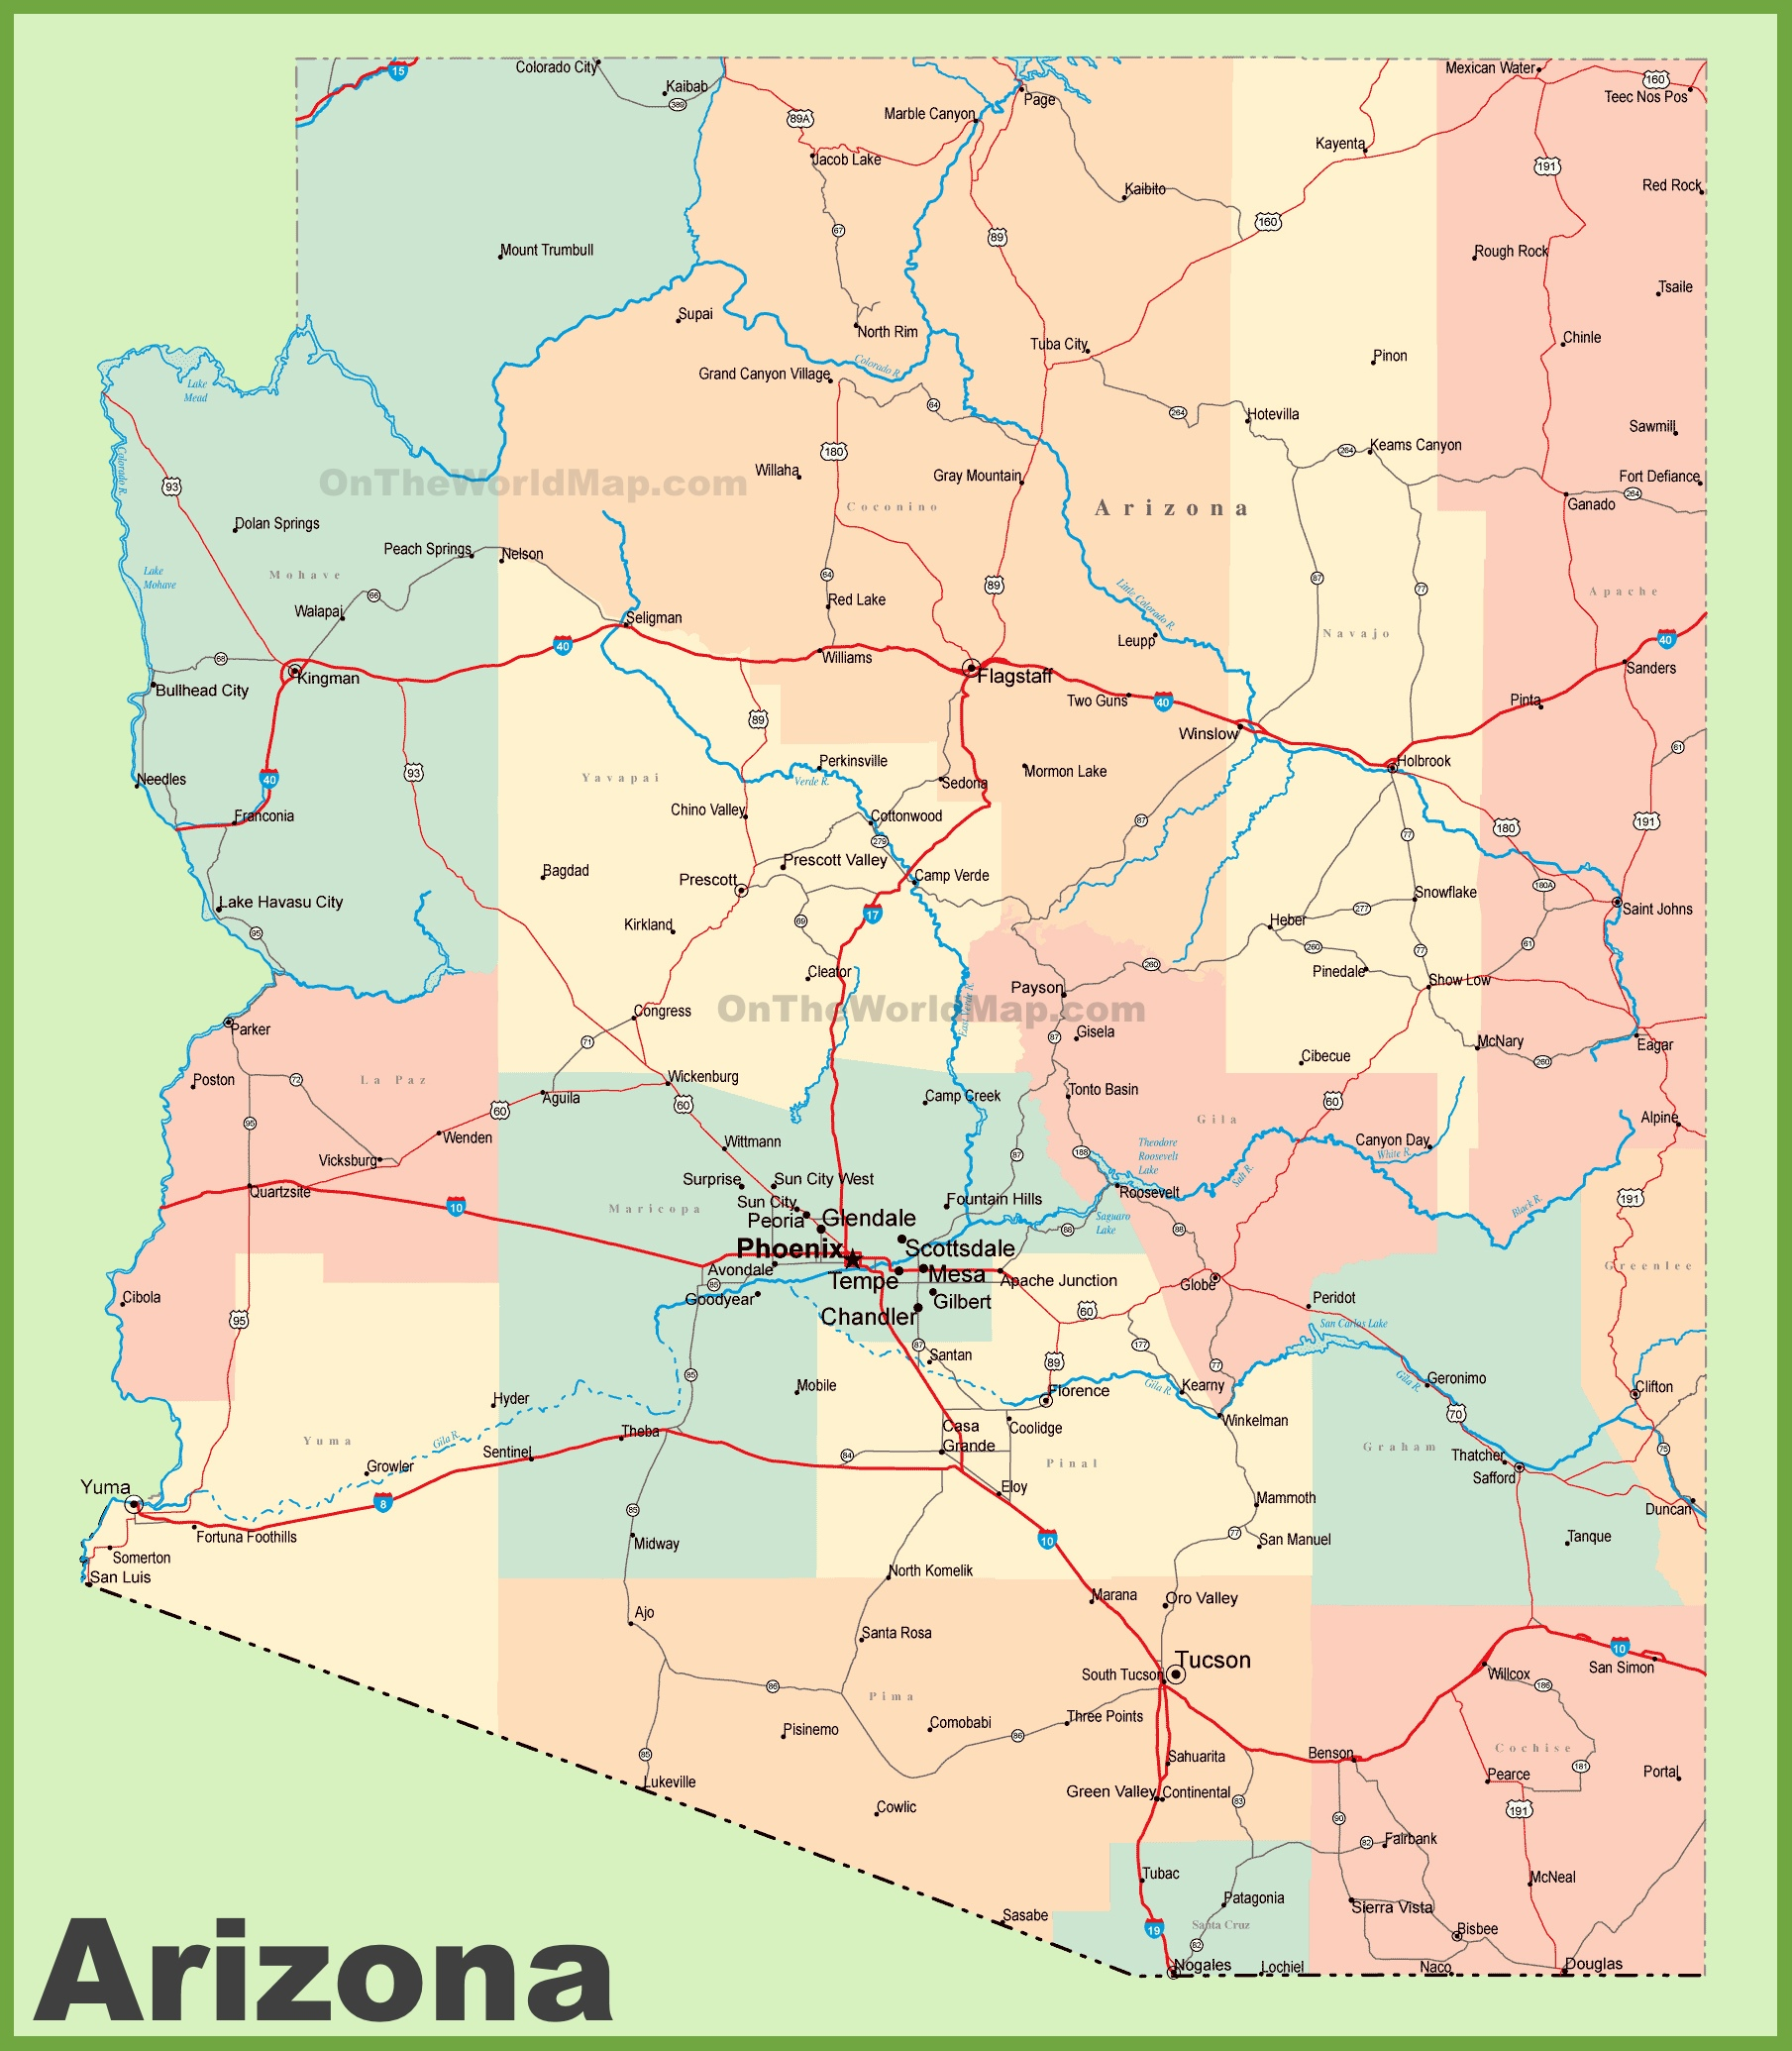 Arizona Road Map With Cities And Towns - Road map of arizona